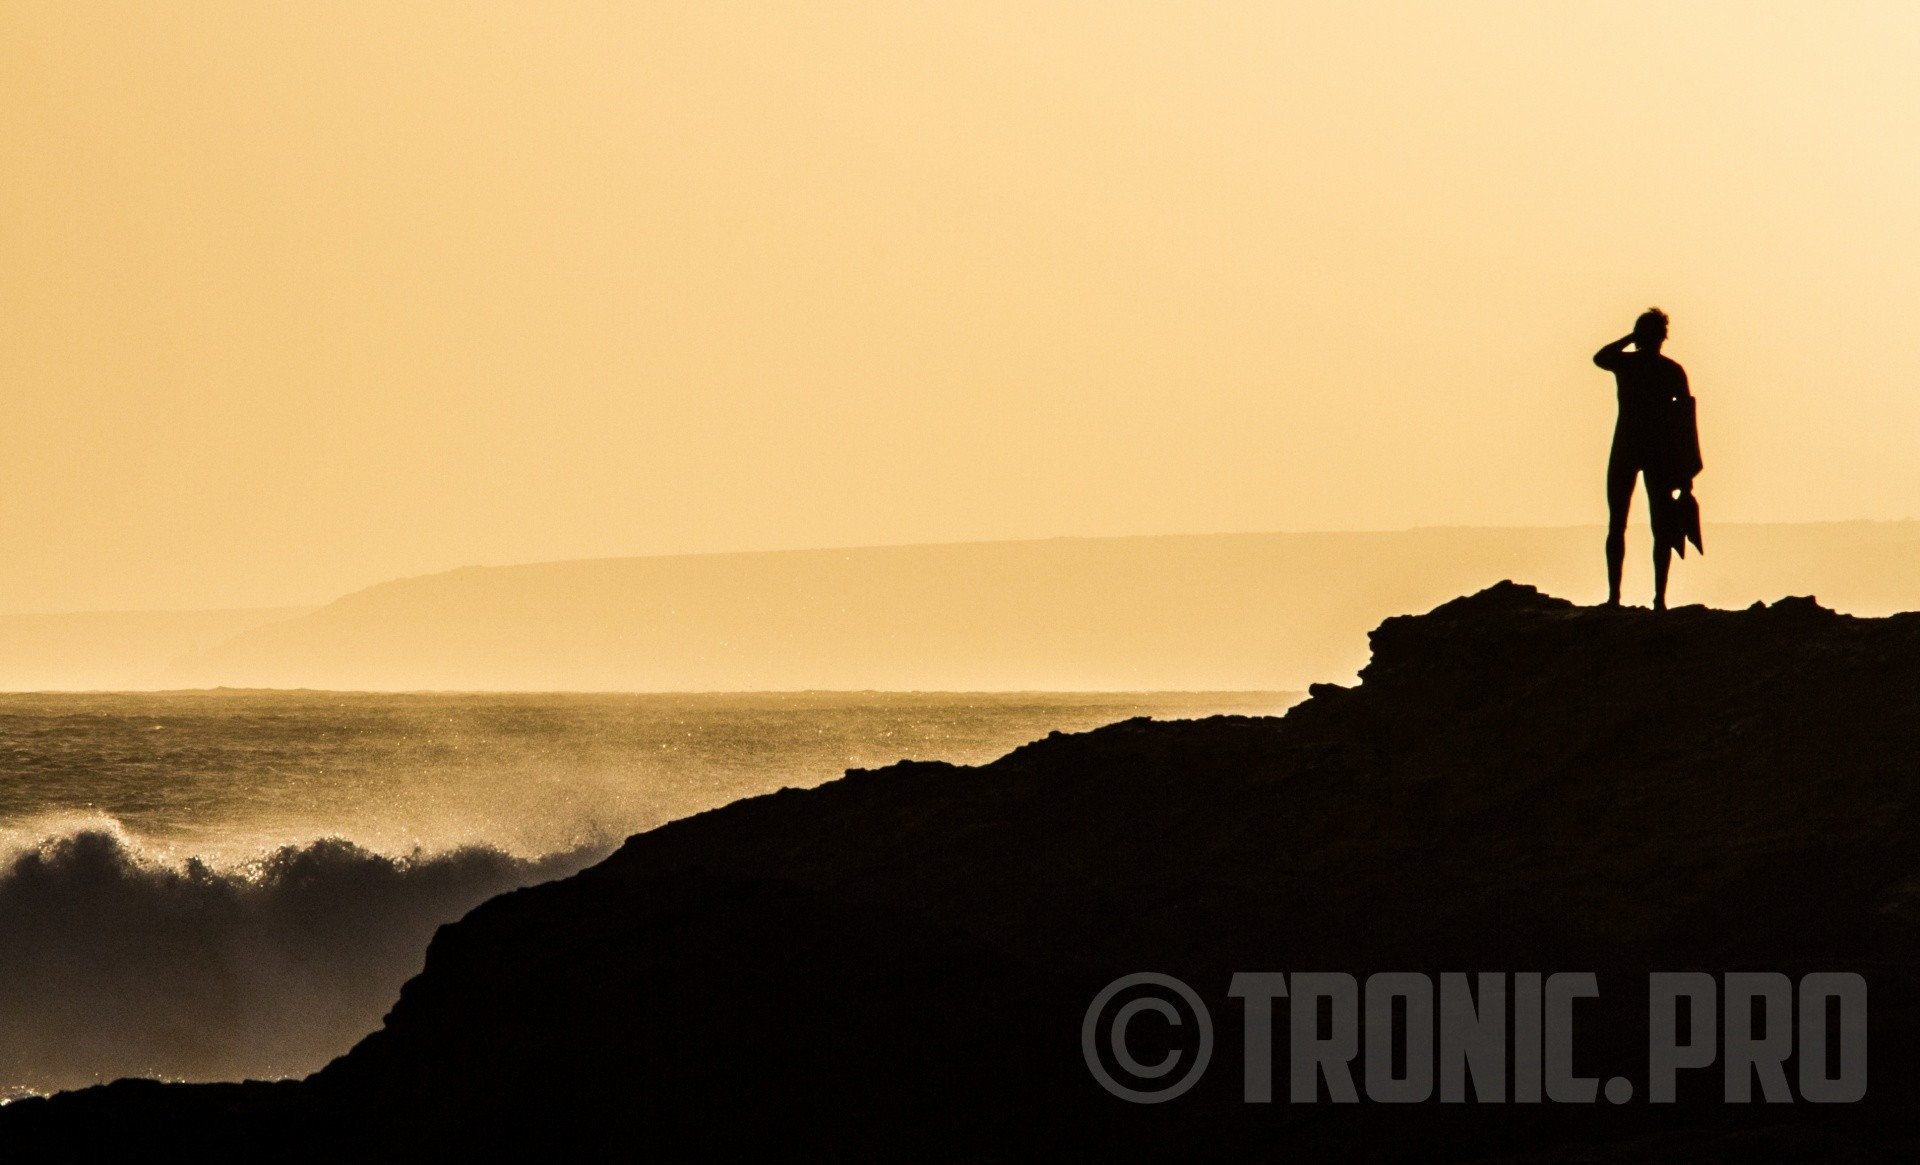 Tronic Pro's photo of Porthleven